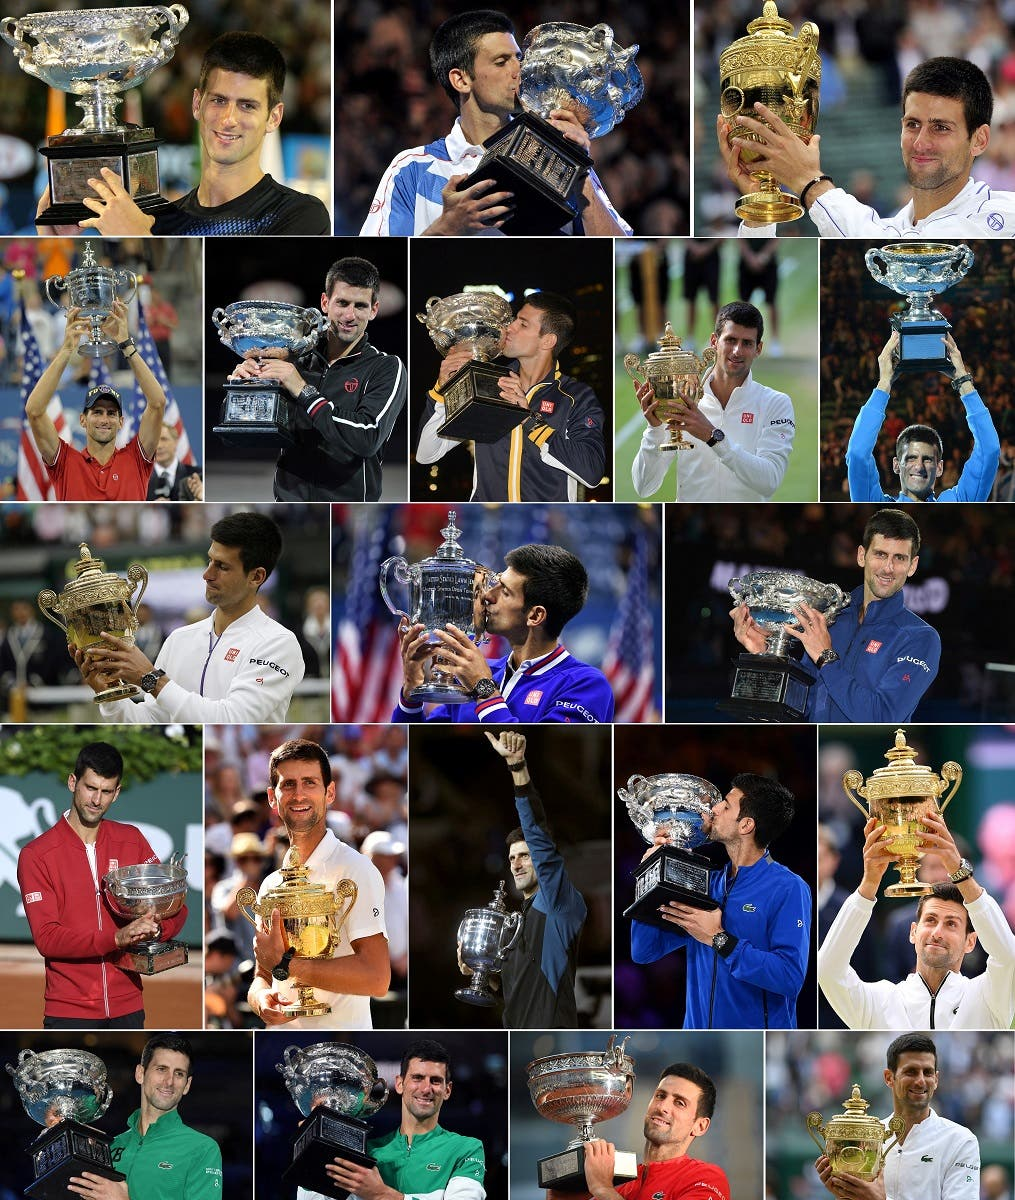 This combination of pictures created in London on July 11, 2021 shows Serbia's Novak Djokovic posing with his 20 men's singles Grand Slam titles after his victory at Wimbledon in 2019; (top row L-R) Australian Open 2008, Australian Open 2011, Wimbledon 2011; (2nd row L-R) US Open 2011, Australian Open 2012, Australian Open 2013, Wimbledon 2014, Australian Open 2015; (3rd row L-R) Wimbledon 2015, US Open 2015, Australian Open 2016; (4th row L-R) French Open 2016, Wimbledon 2018, US Open 2018, Australian Open 2019 and Wimbledon 2019; (bottom row L-R) Australian Open 2020 and 2021, French Open 2021 and Wimbledon 2021. (AFP)